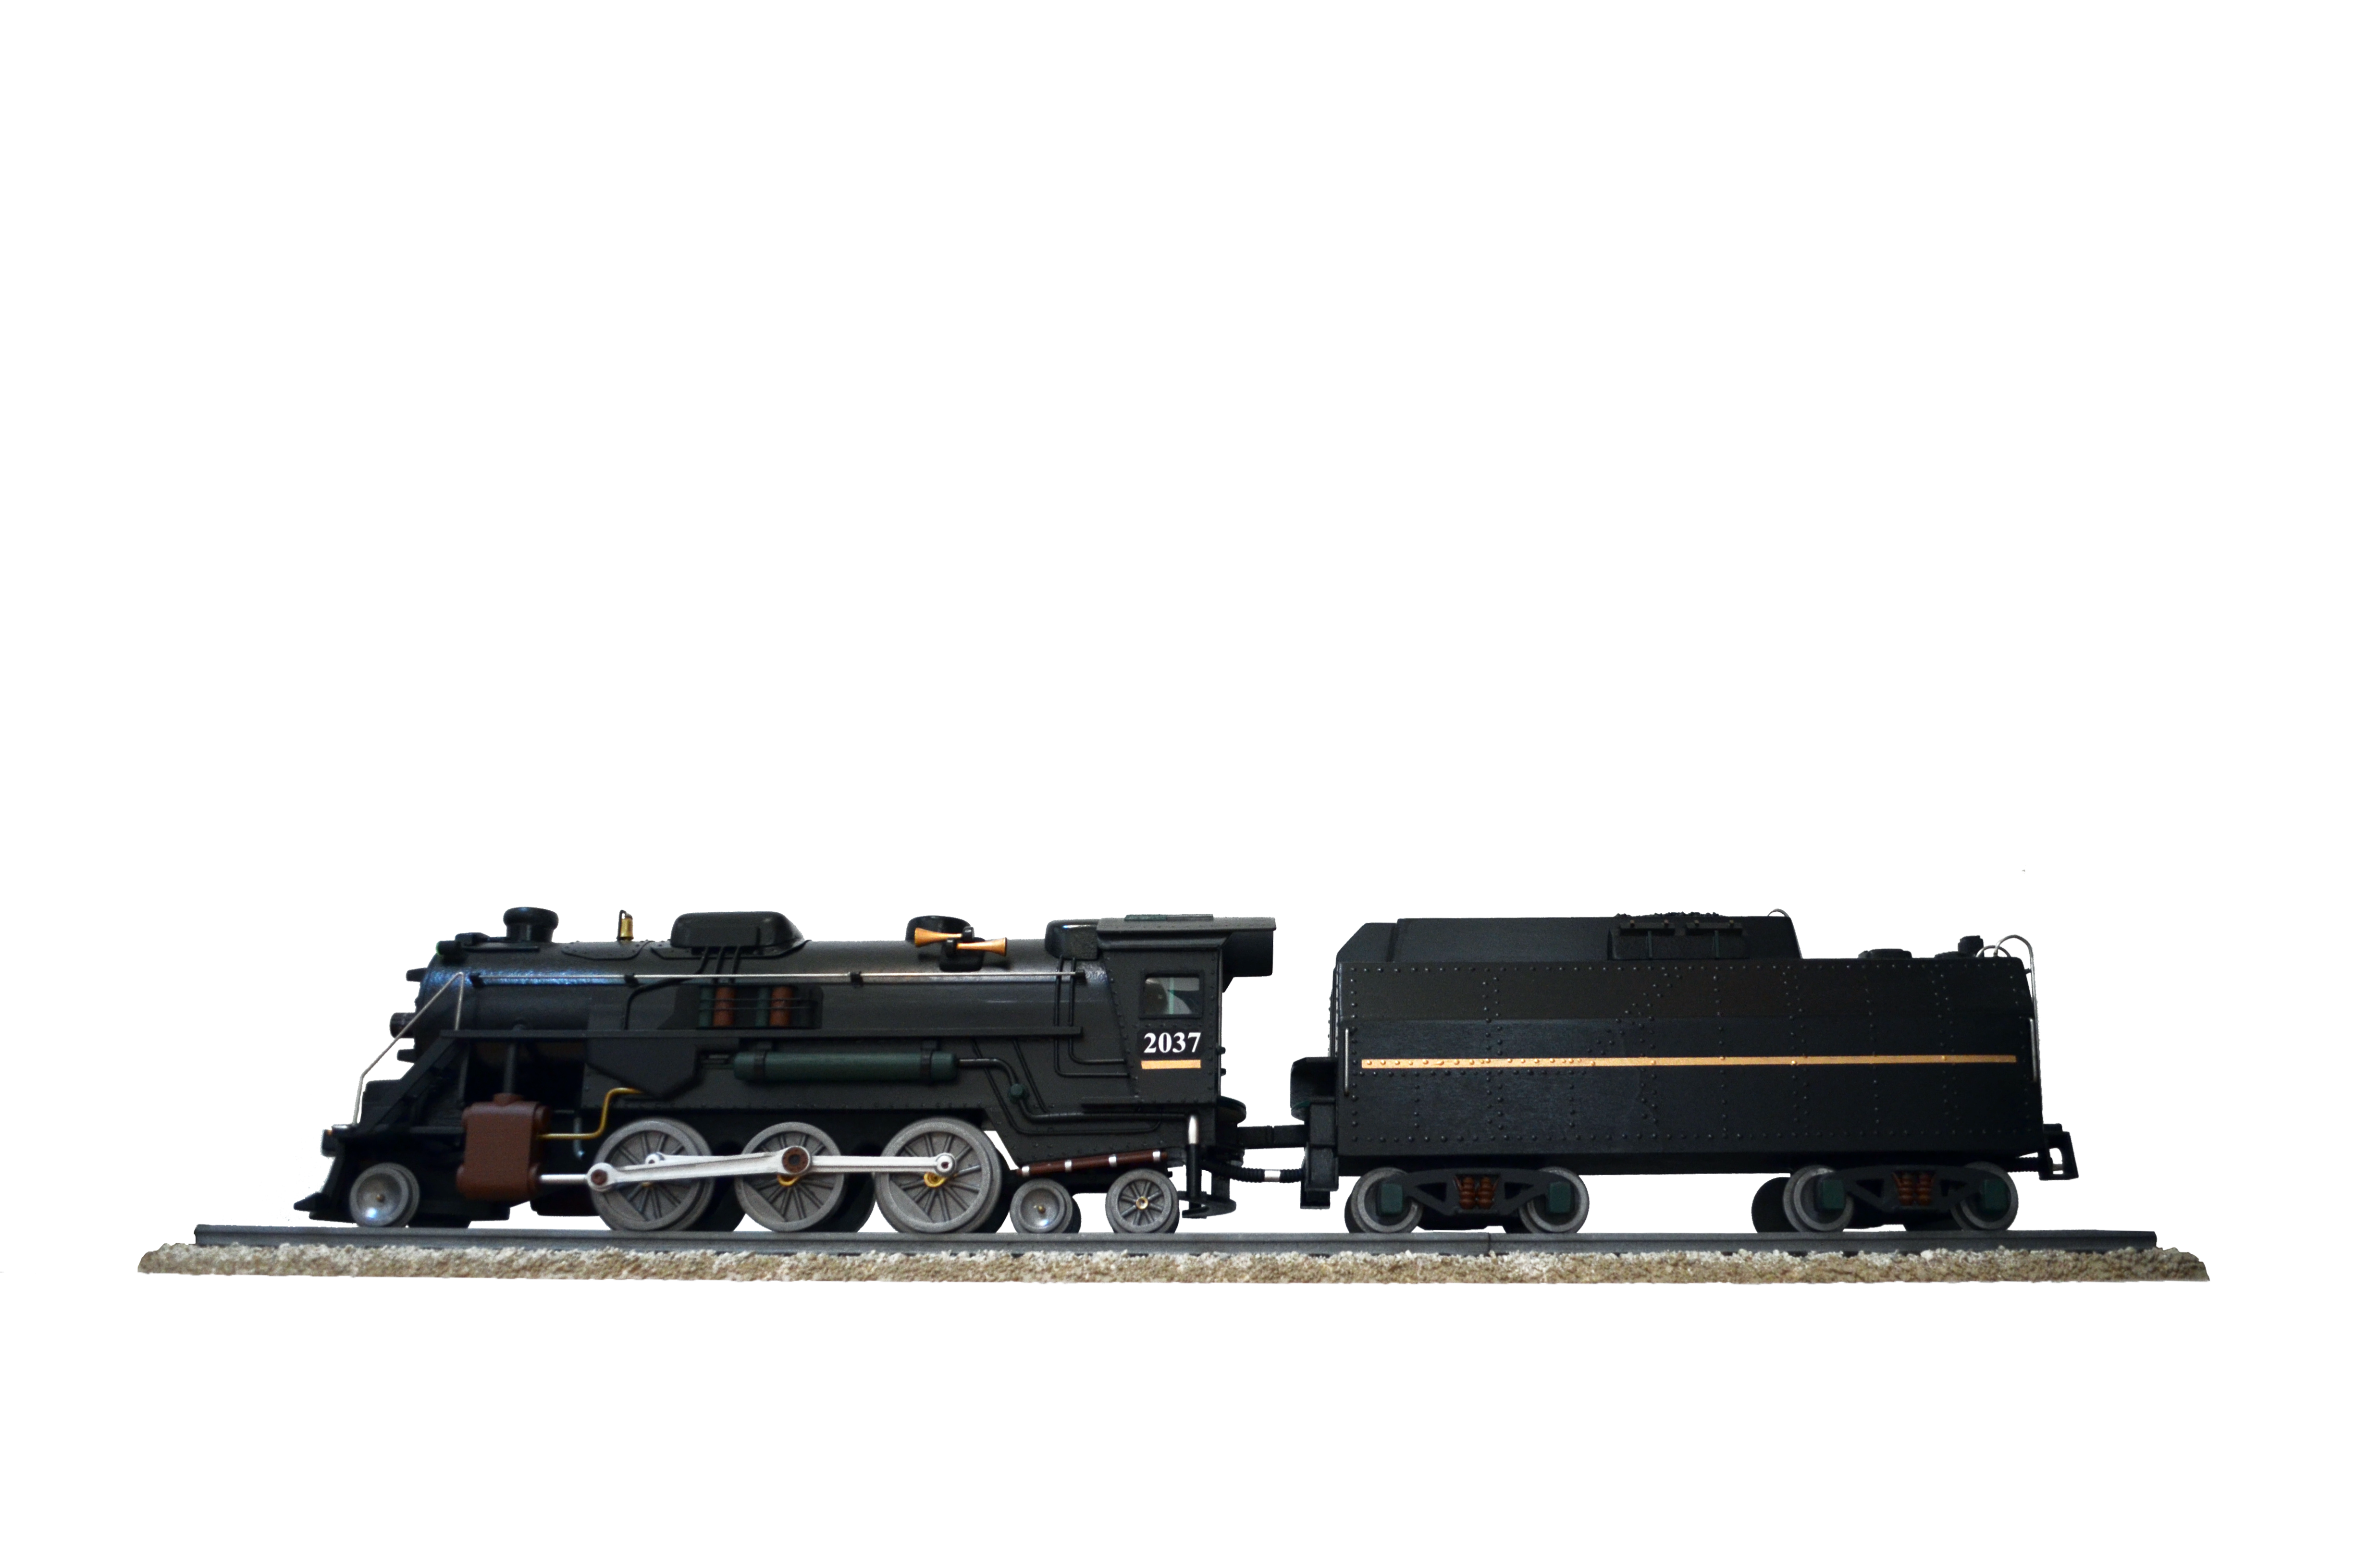 Track clipart side view. Trains png transparent images